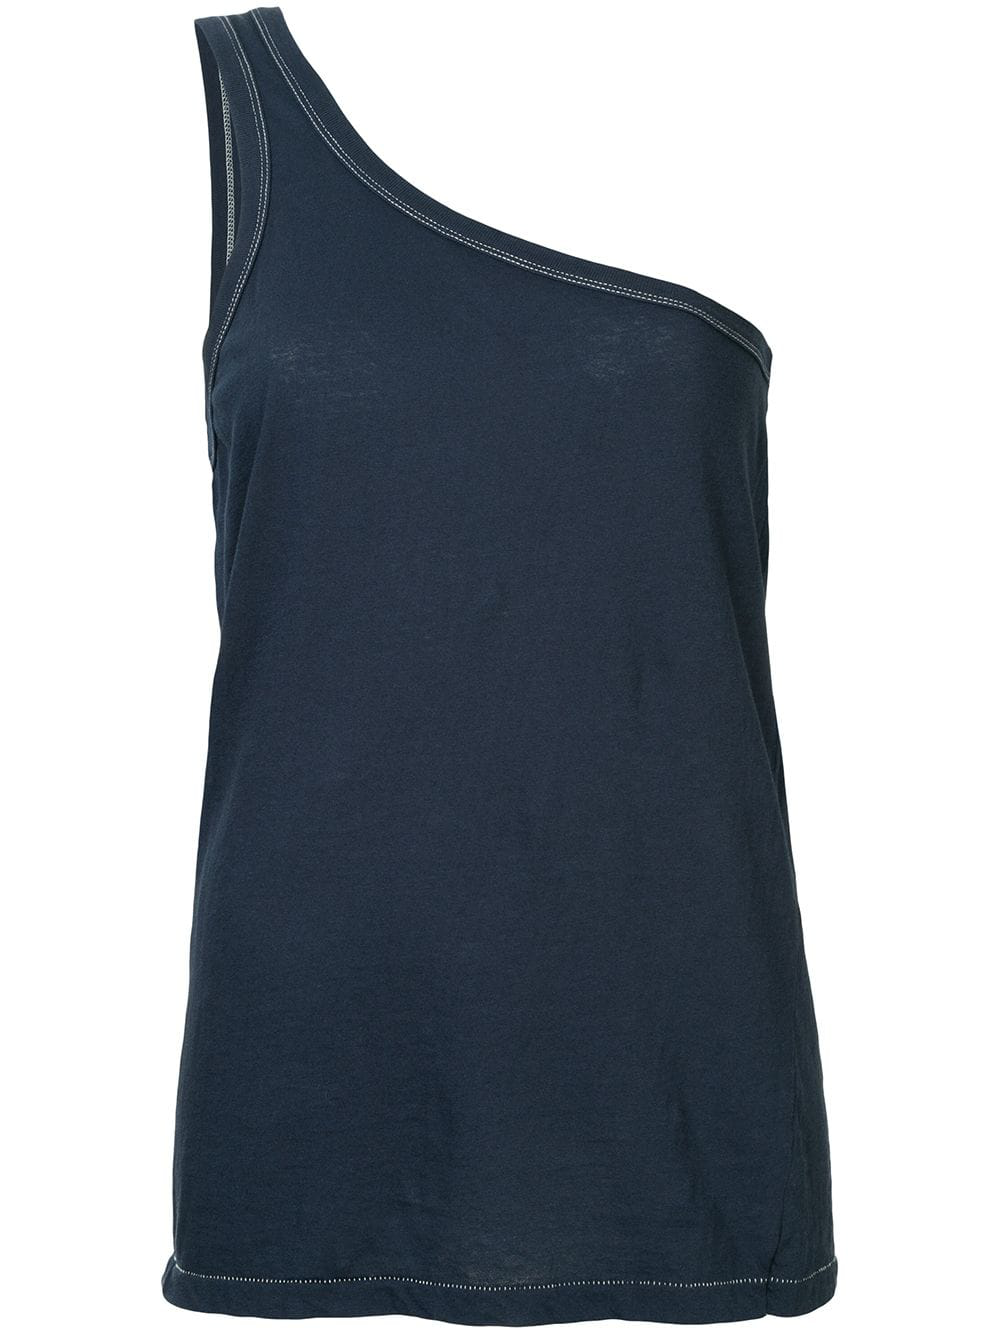 5a39233e69972 Bassike One Shoulder Tank Top - Classic Navy